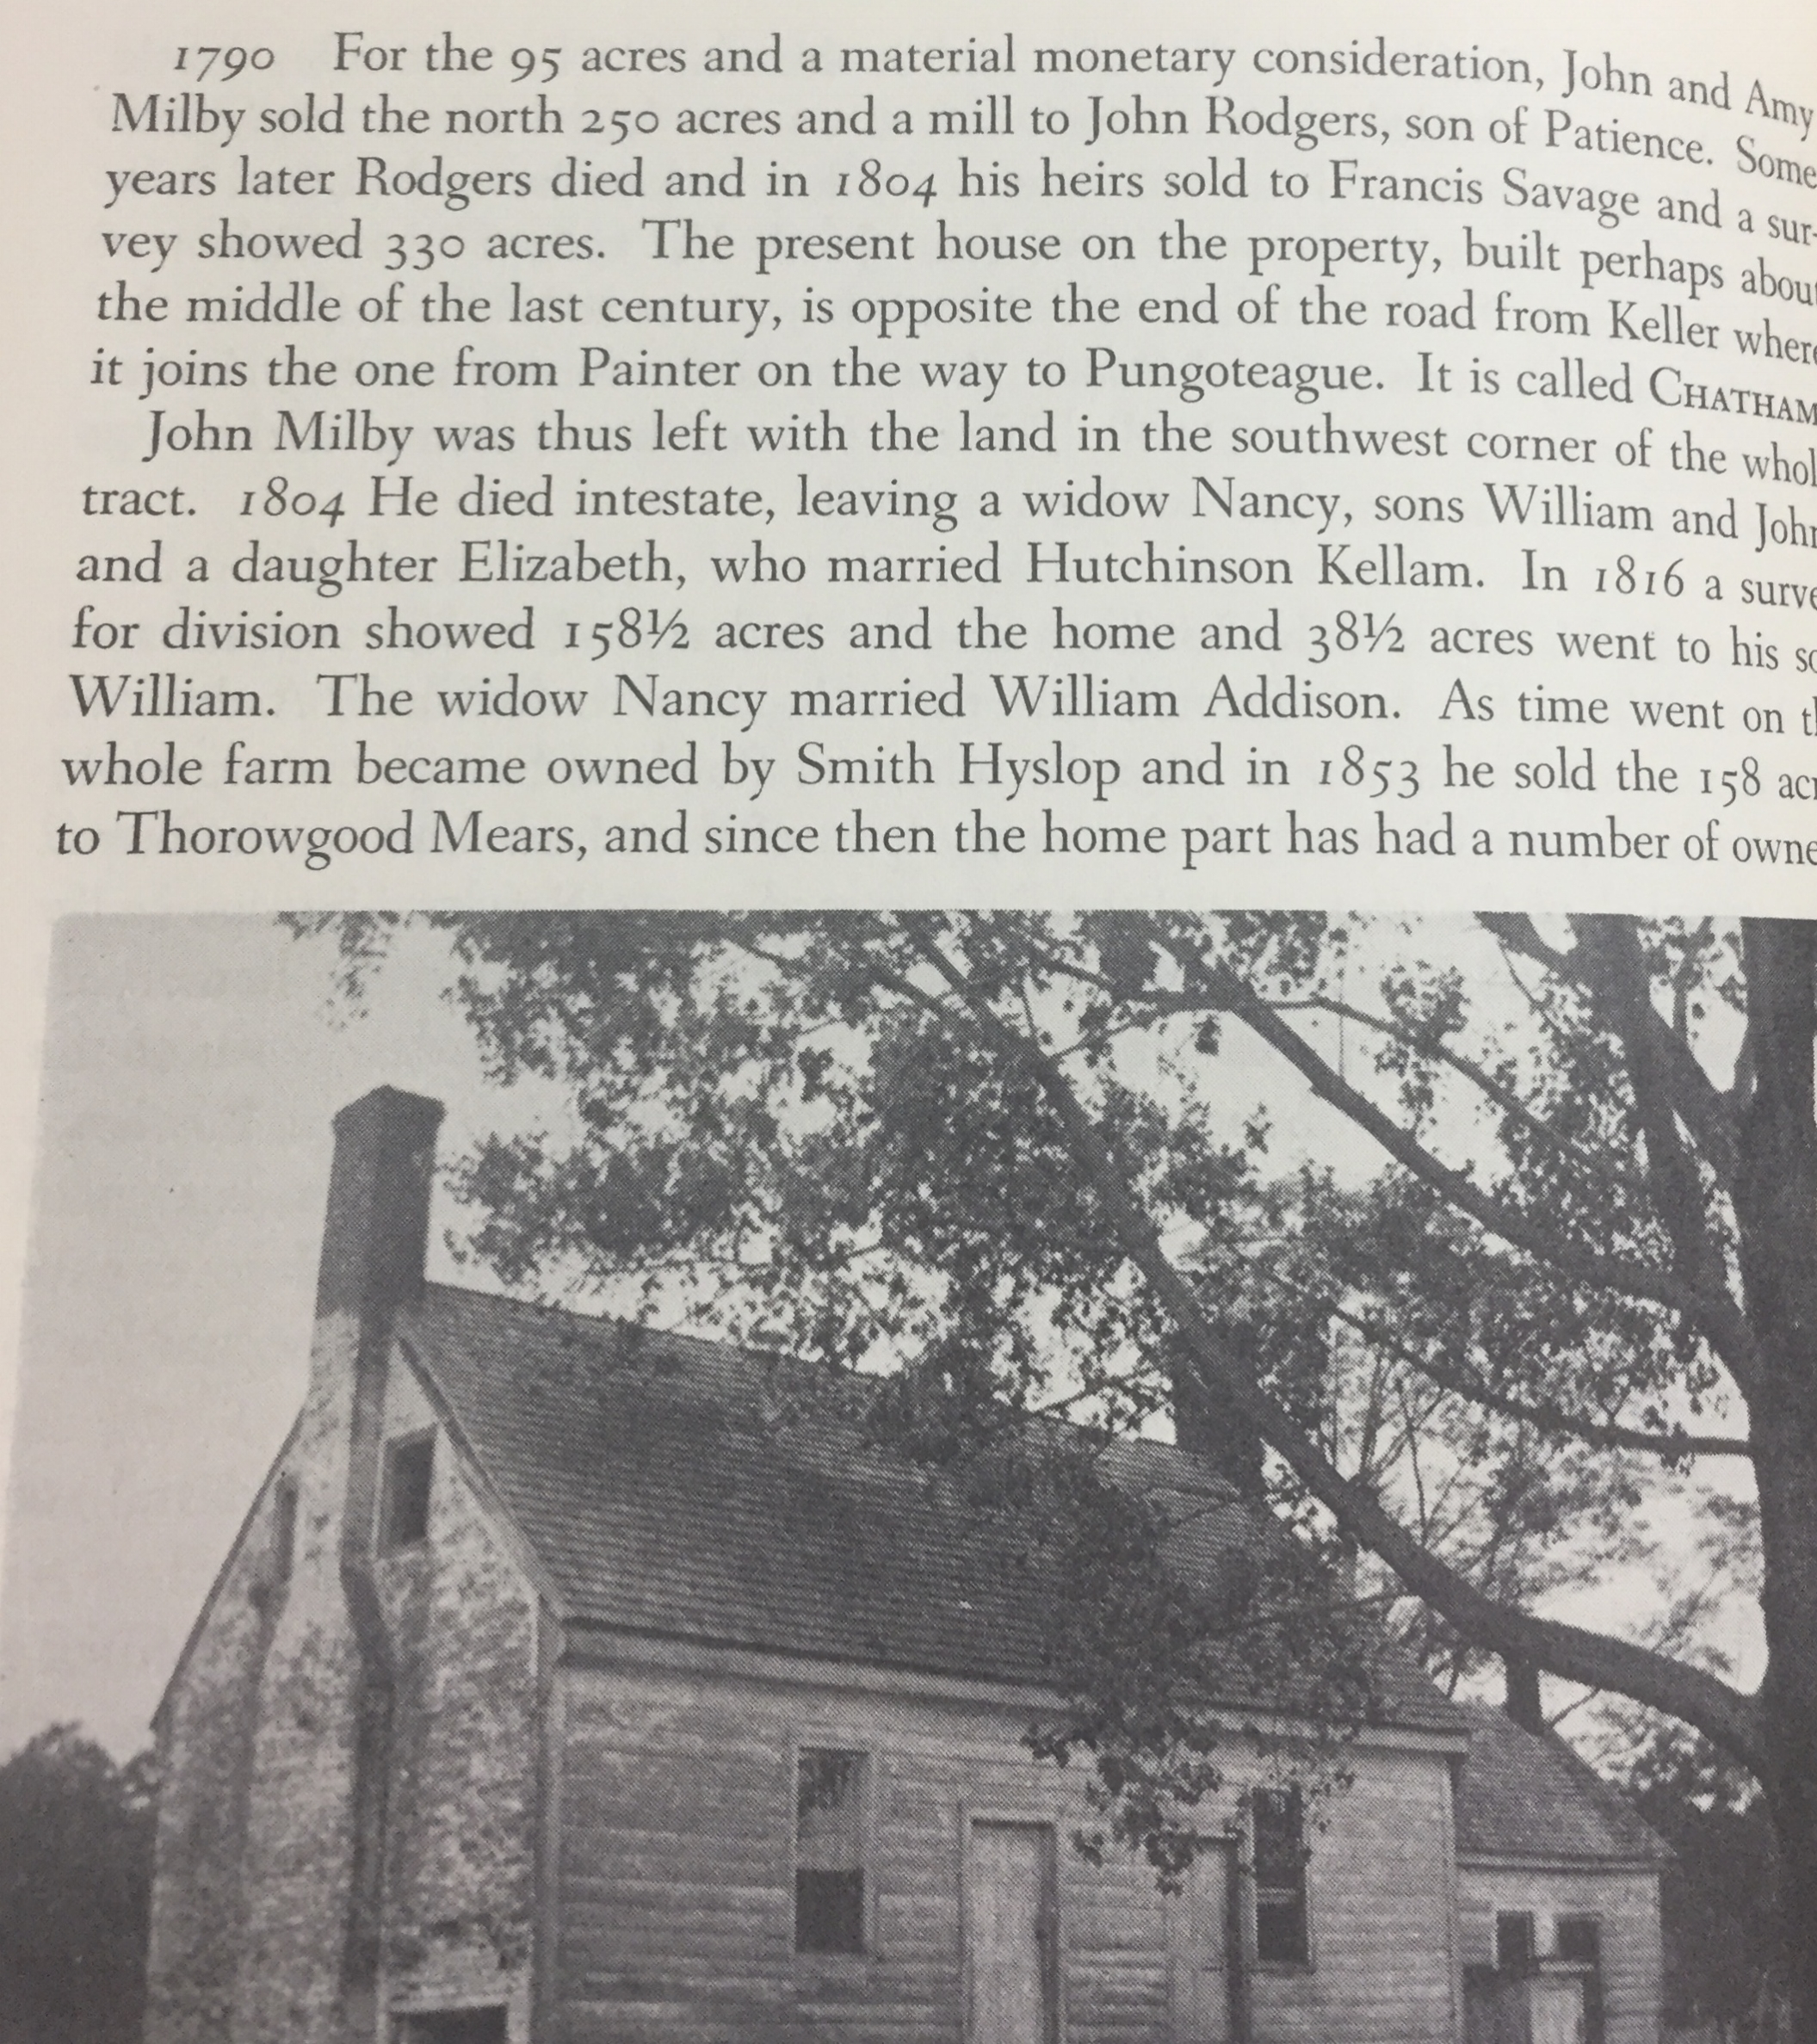 A portion of our Farm history - Local history of the home and farm in just one of the pages of the Whitelaws books